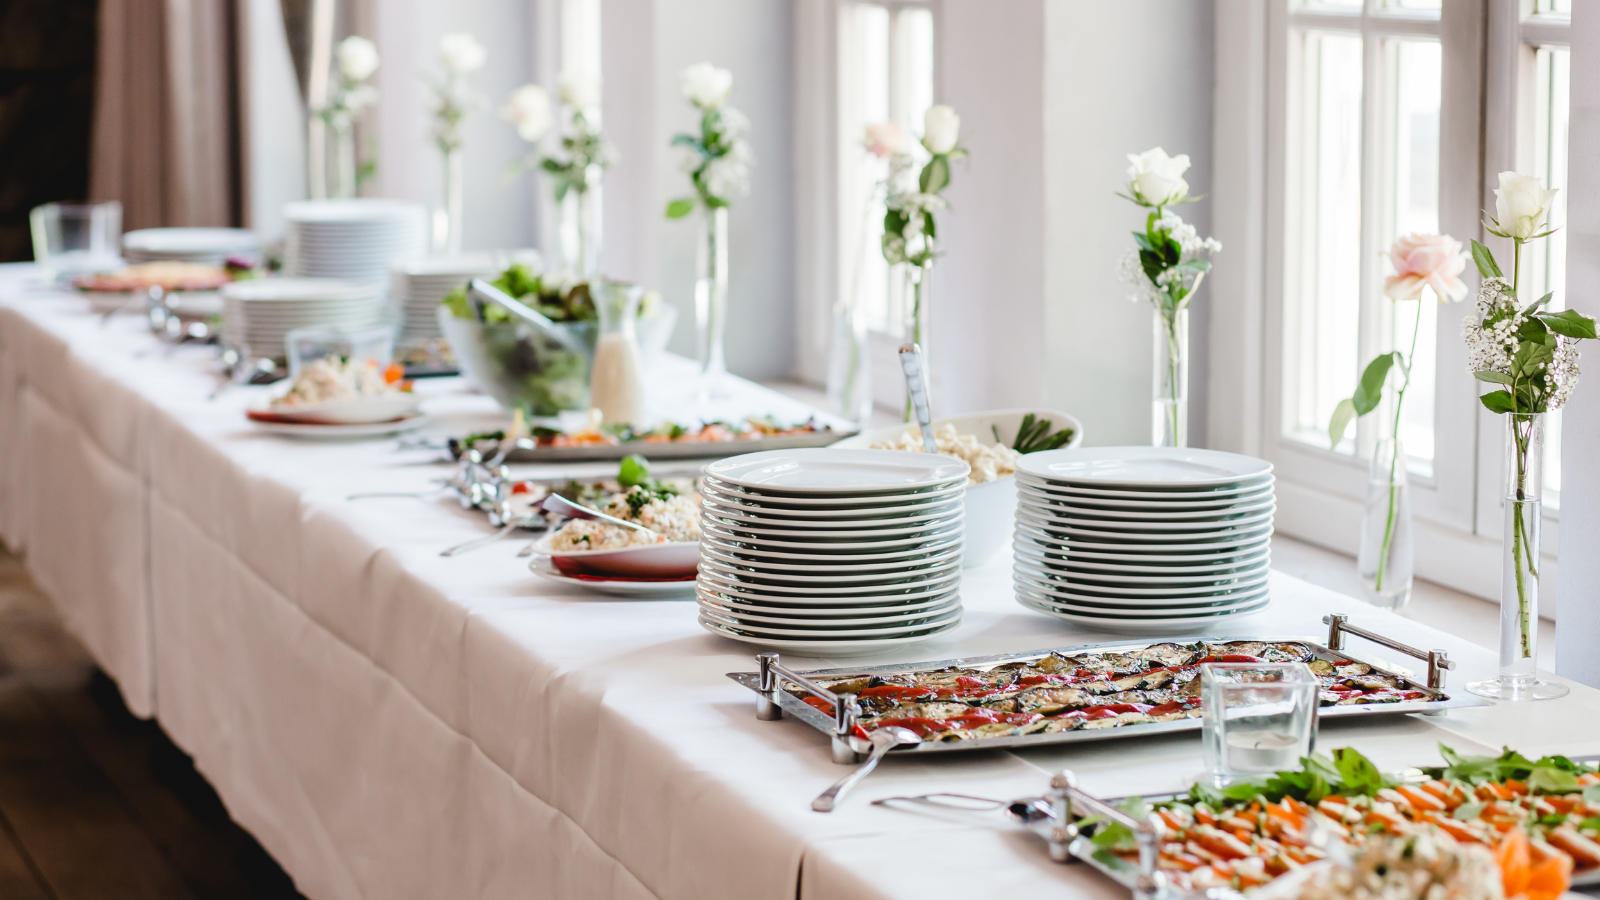 buffet style catering at wedding